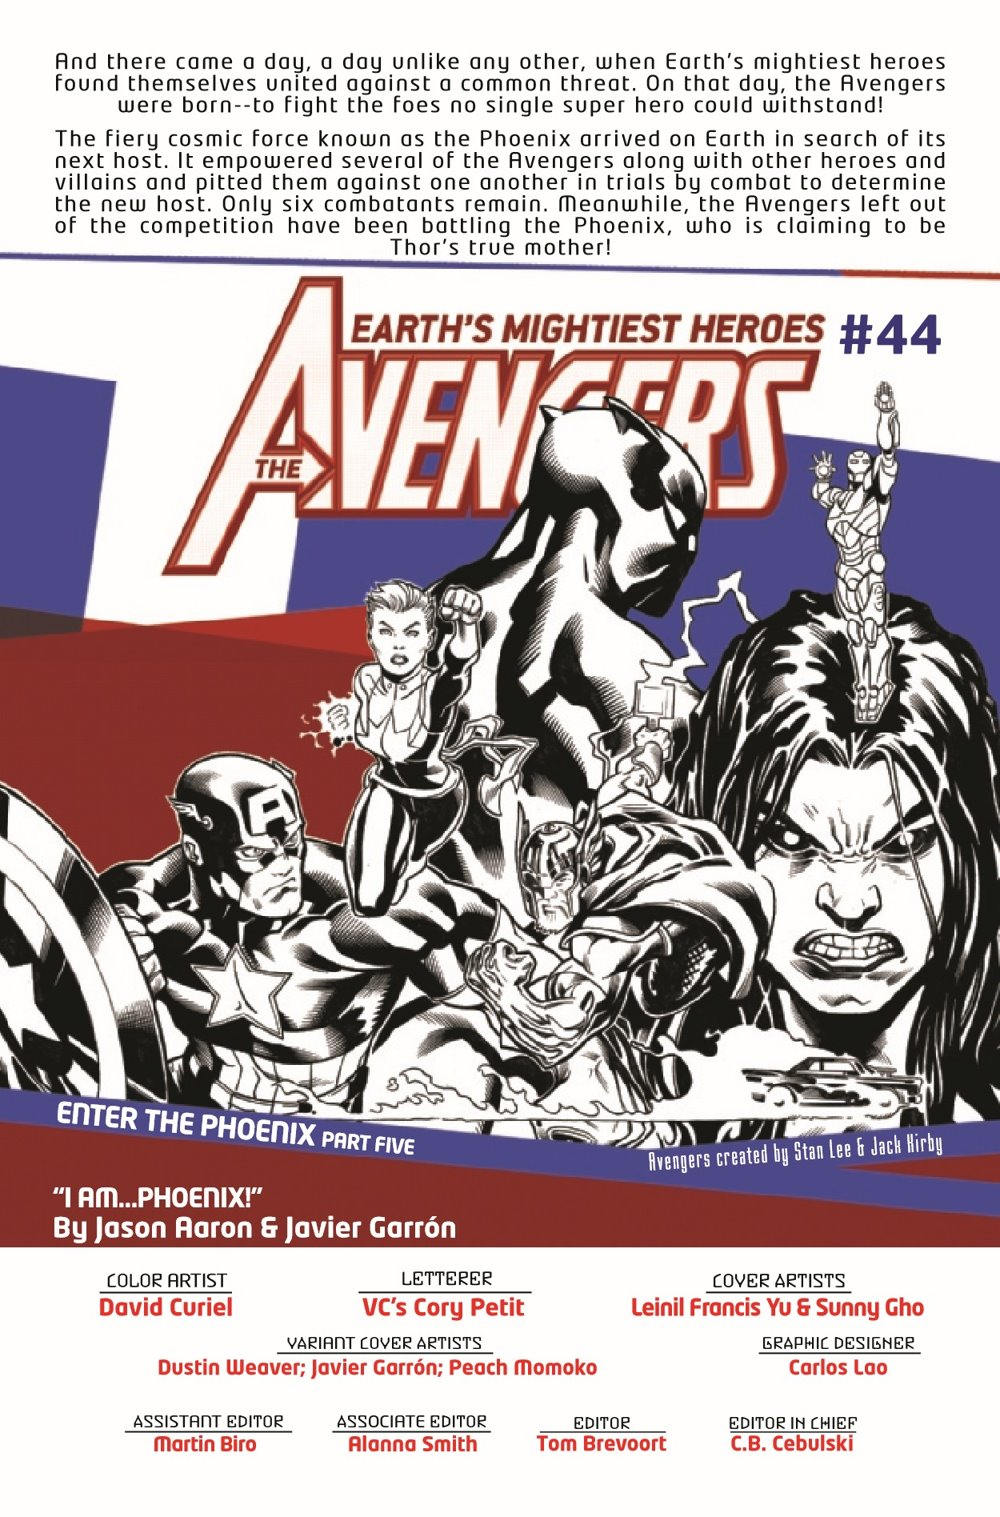 AVEN2018044_Preview-2 ComicList Previews: THE AVENGERS #44